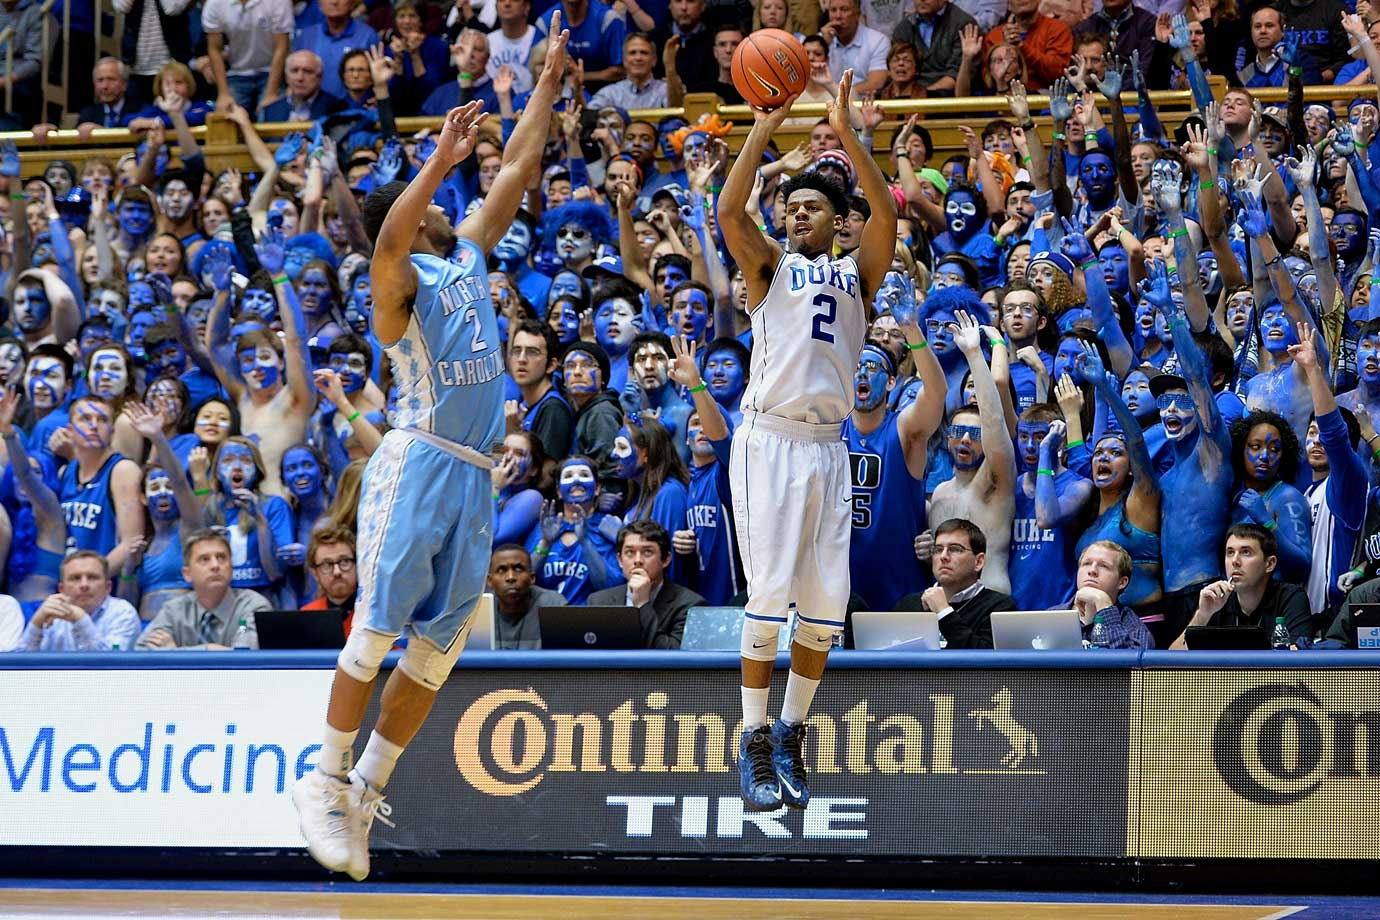 Cook is not the biggest name on the Duke roster, but he's an invaluable part of the team's success. Cook is relied on heavily, playing about 36 minutes a game for the Blue Devils. His long-range shooting—just over 40 percent from three—gives the rest of the Duke offense room to operate. His leadership at the guard position offsets the inexperience of freshmen Okafor and Tyus Jones.